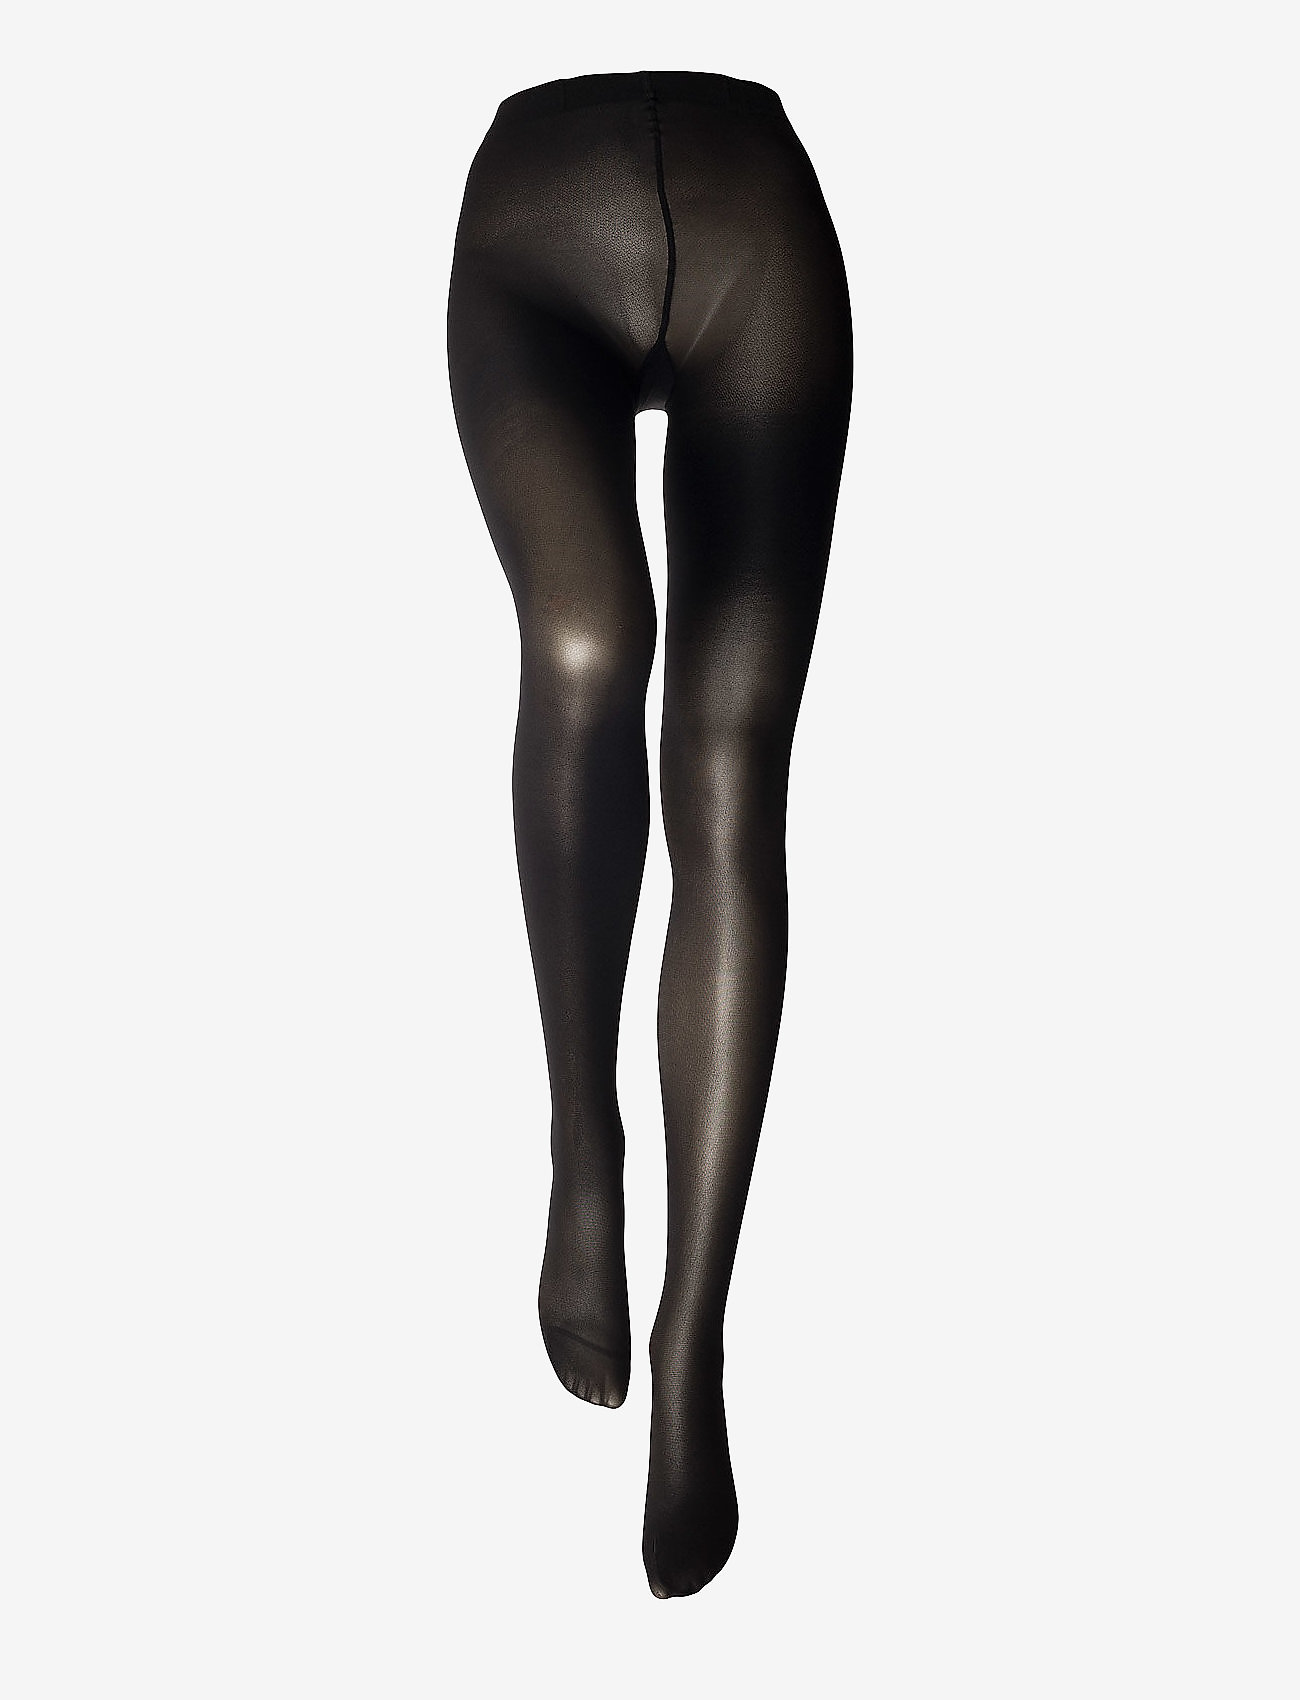 Vogue - Ladies den pantyhose, Opaque 40 den - basic stroempebukser - black - 1